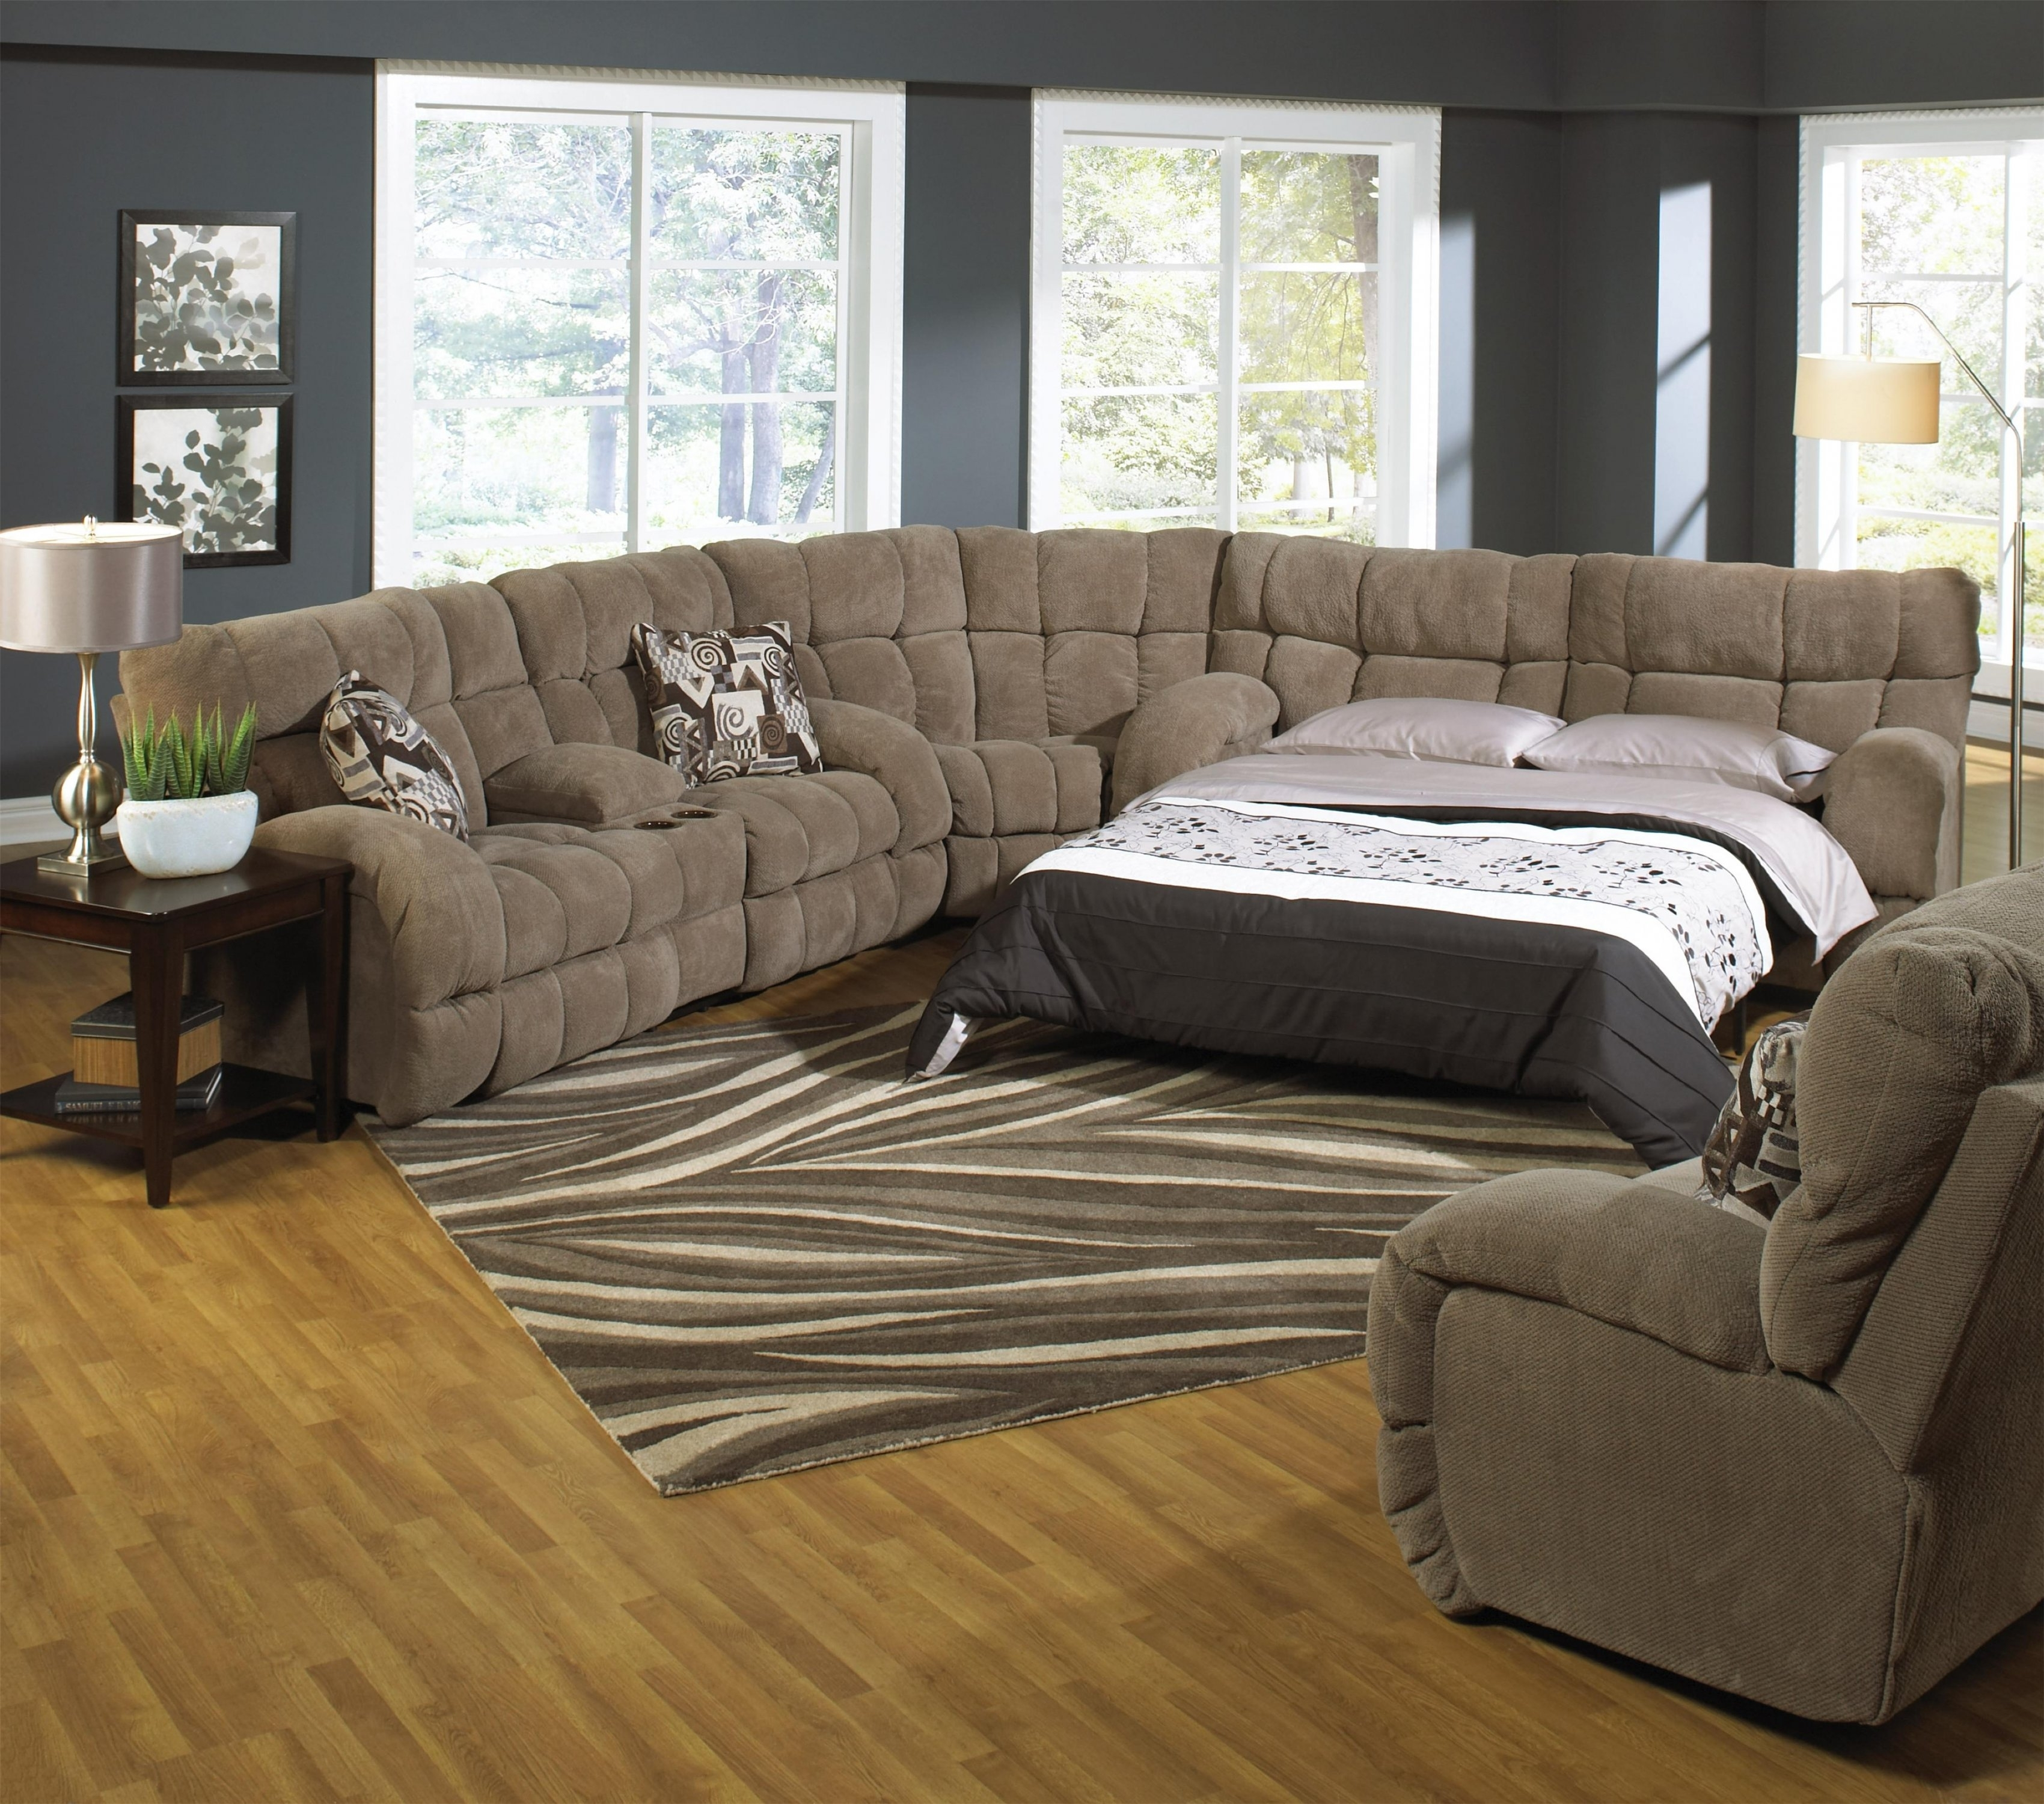 Sectional Sleeper Sofa Recliner For Sectional Sofas With Recliners (View 10 of 15)